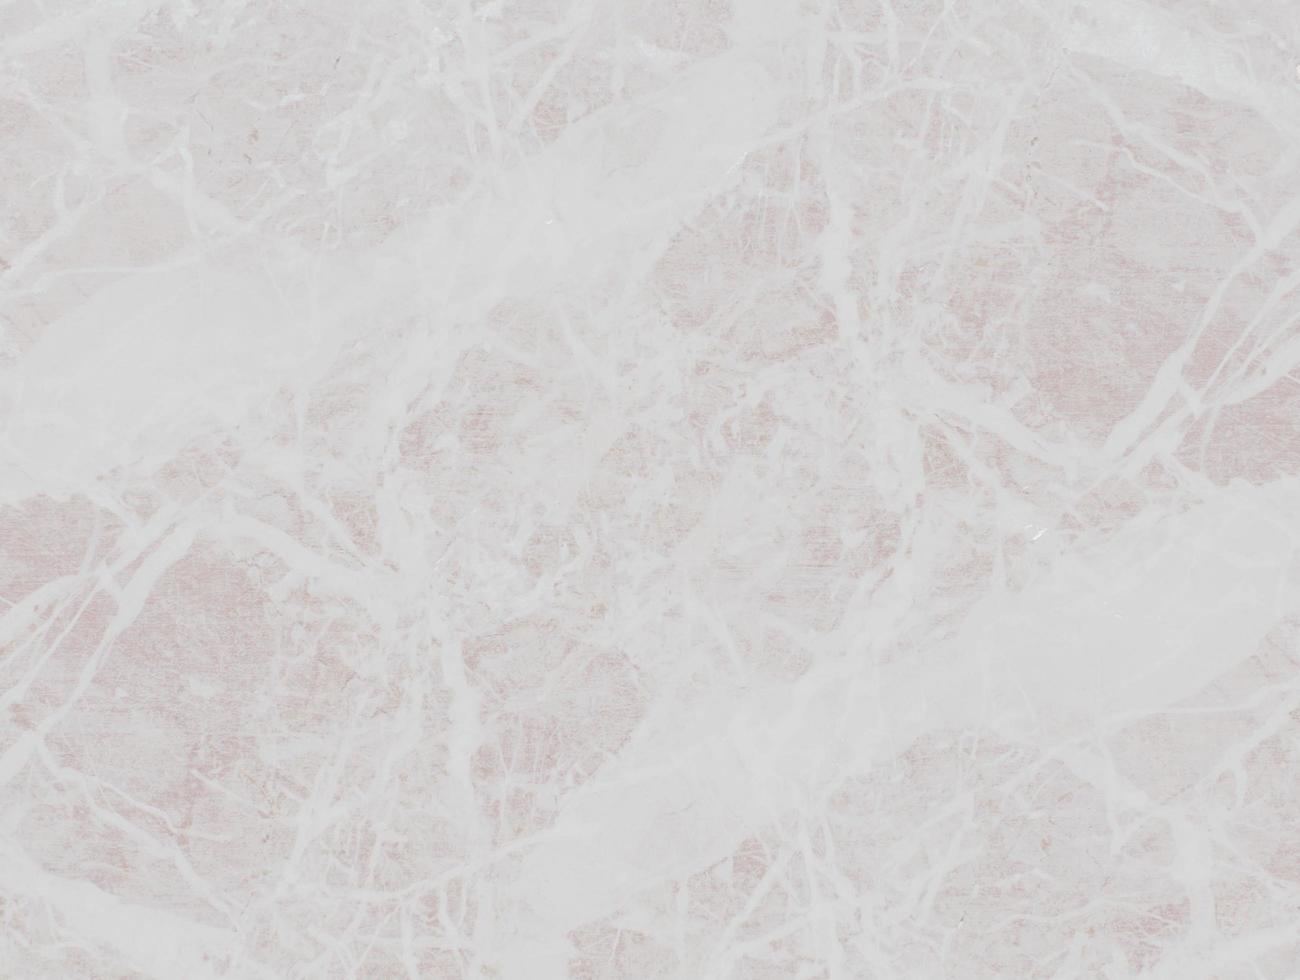 Marbled stone texture background photo